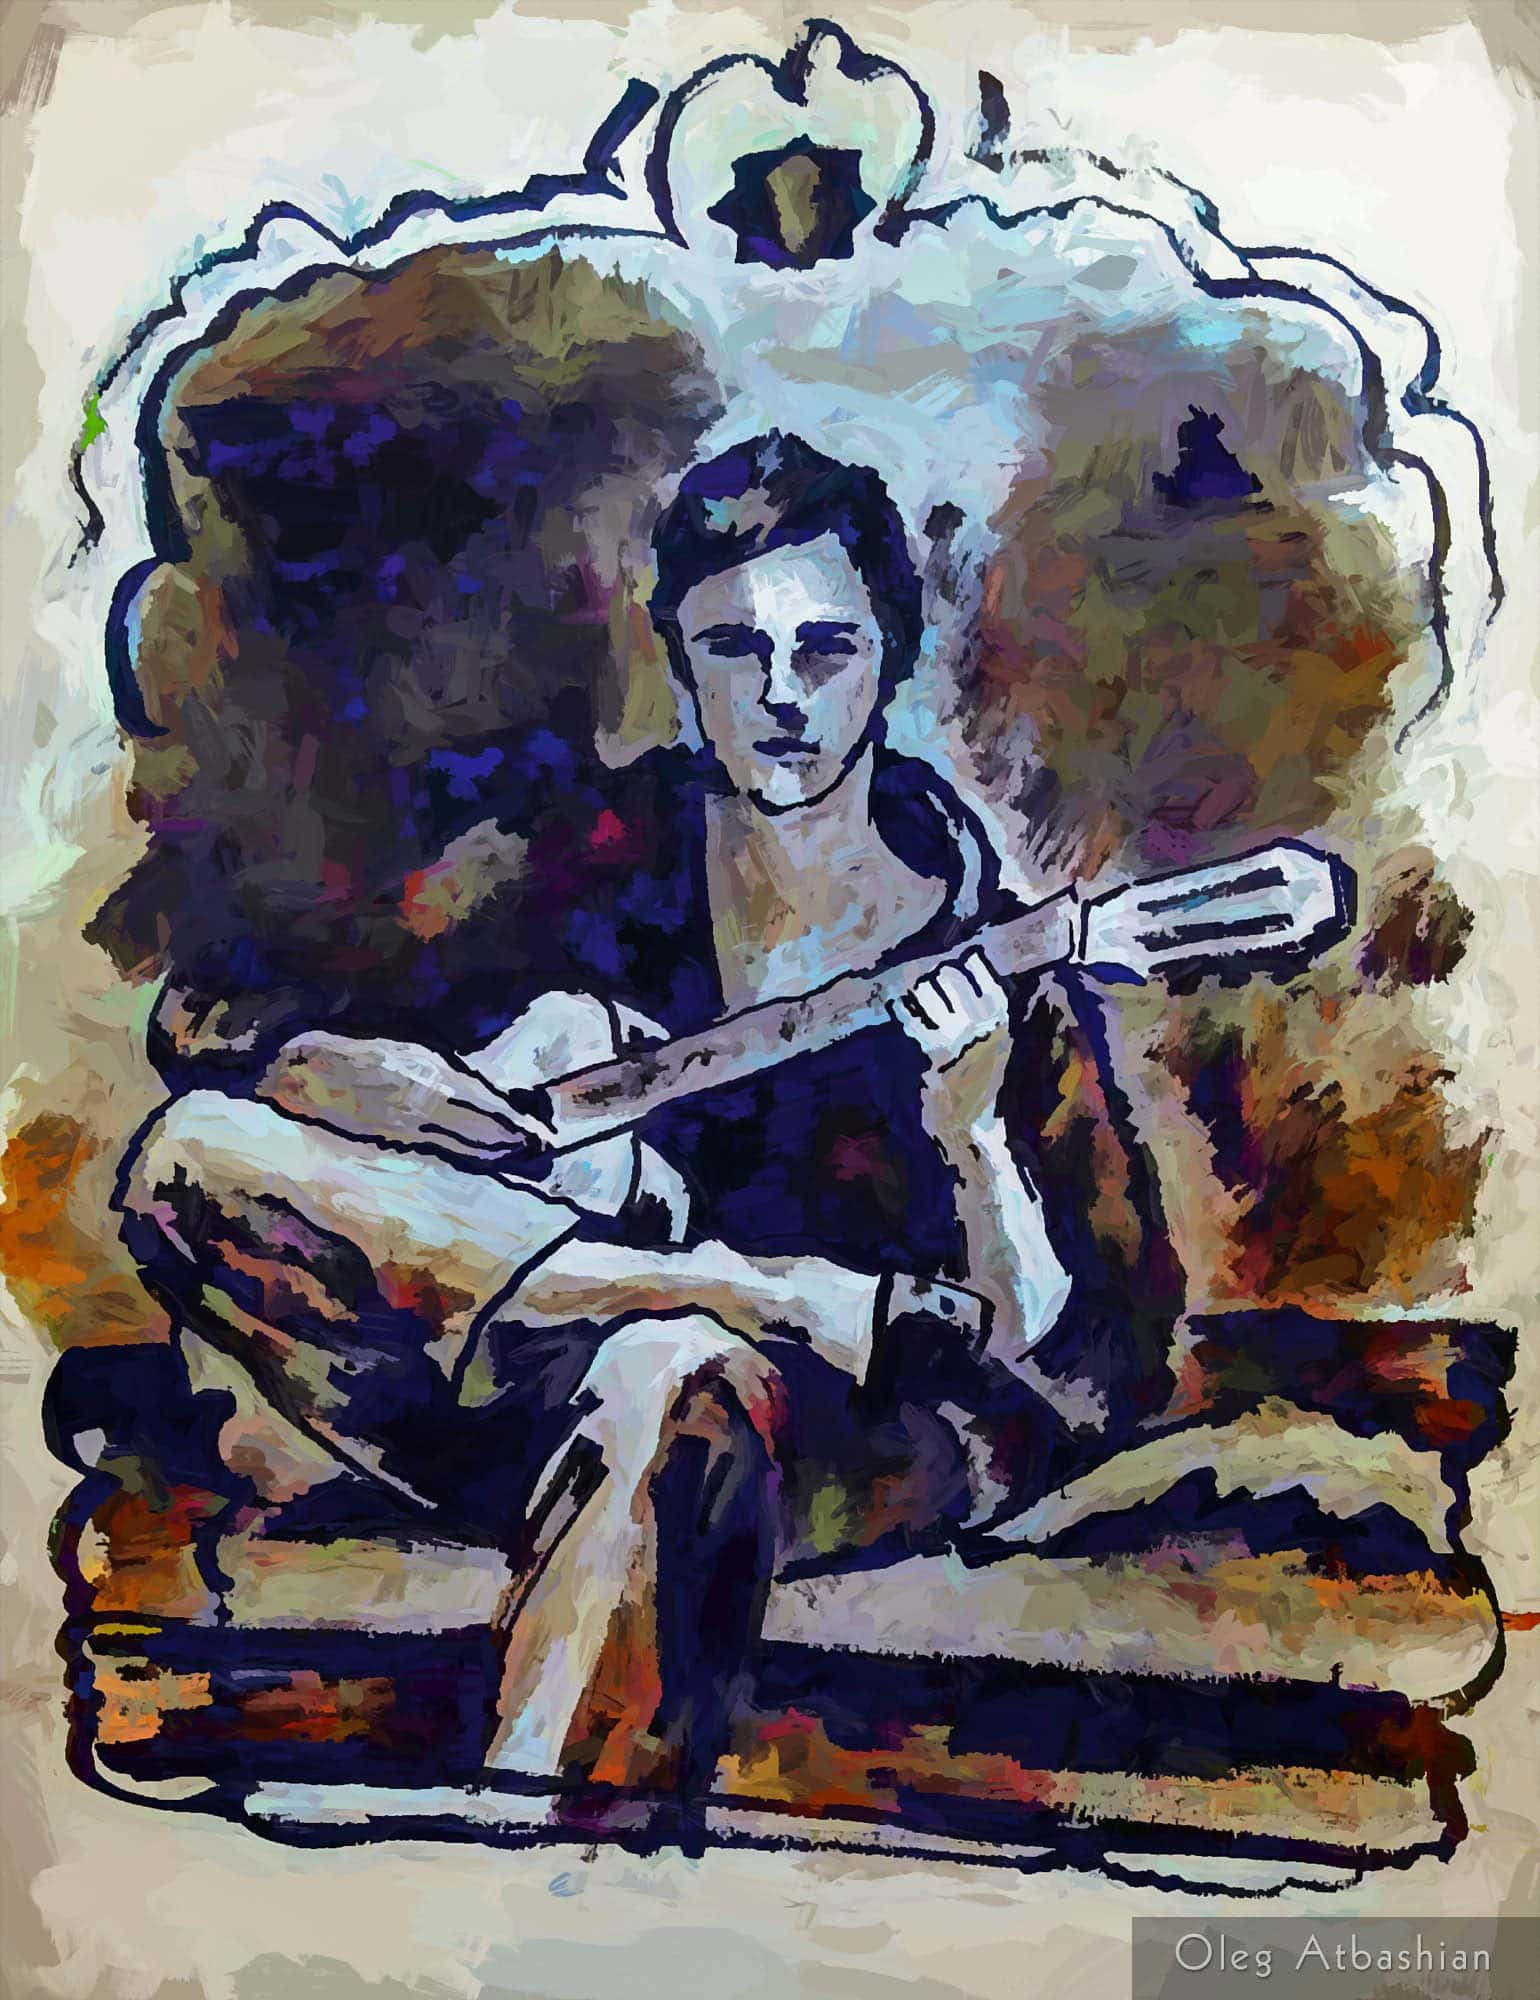 Guitarist on the Couch